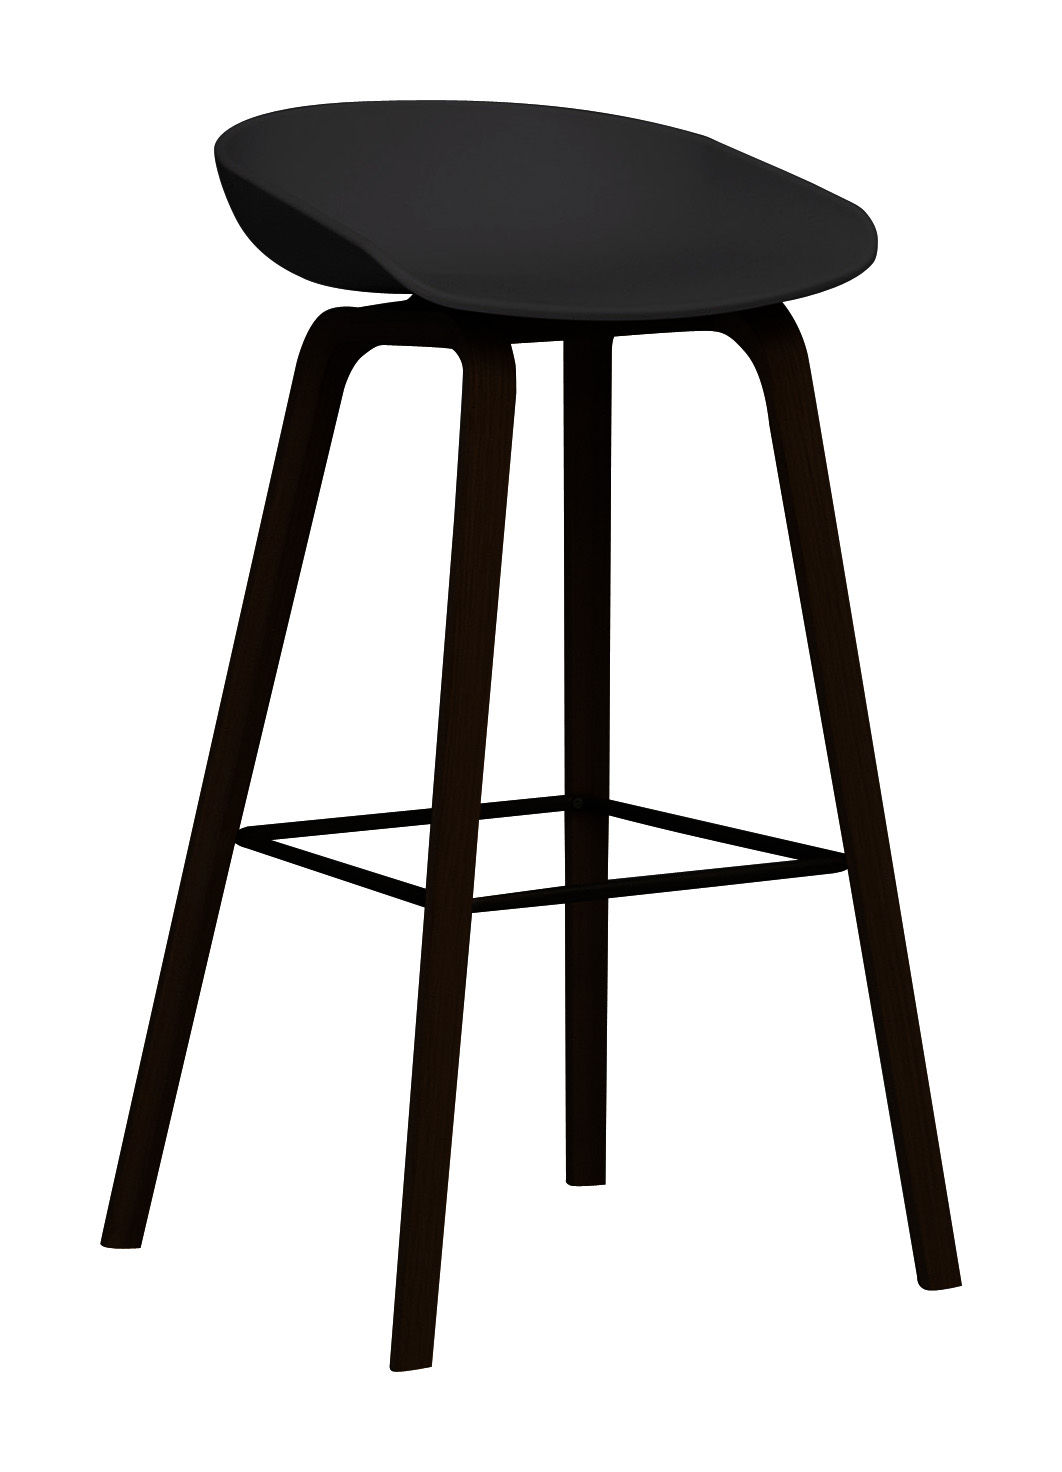 tabouret de bar about a stool aas 32 h 75 cm plastique pieds bois noir pieds noirs hay. Black Bedroom Furniture Sets. Home Design Ideas